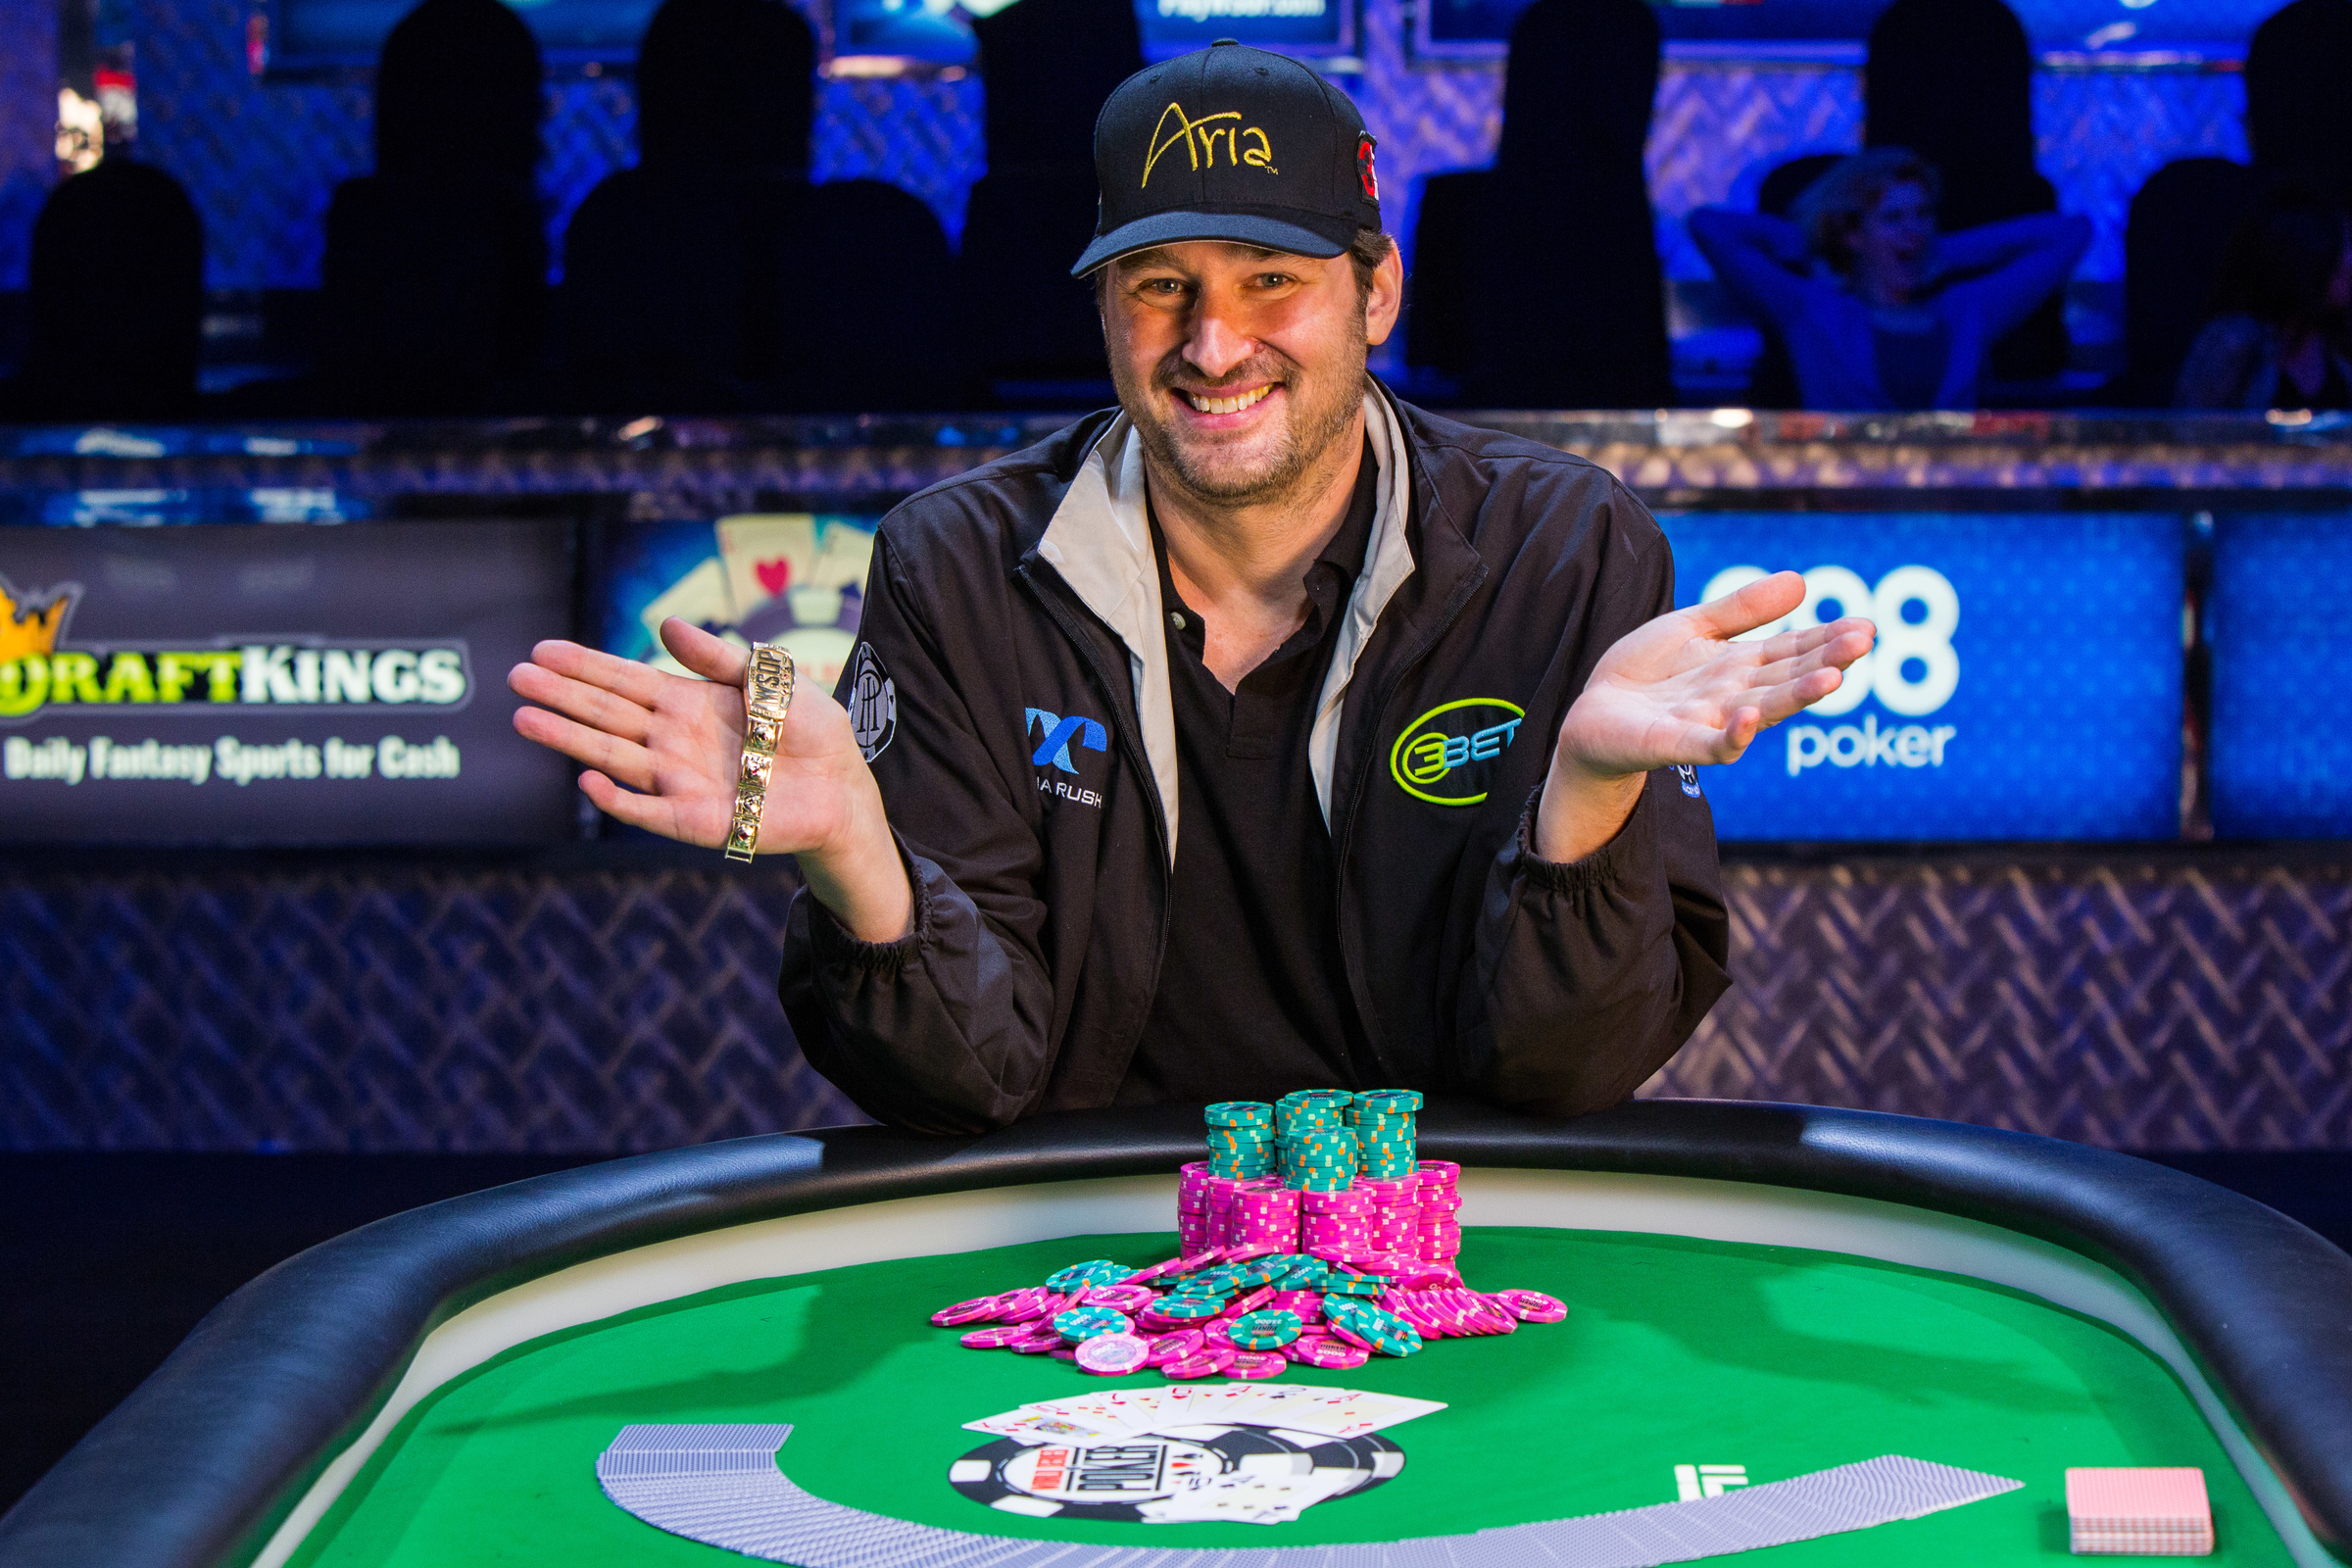 Phil Hellmuth to Promote Relaunched YouStake, Starts by Selling 60 Percent of His WPT LAPC Action